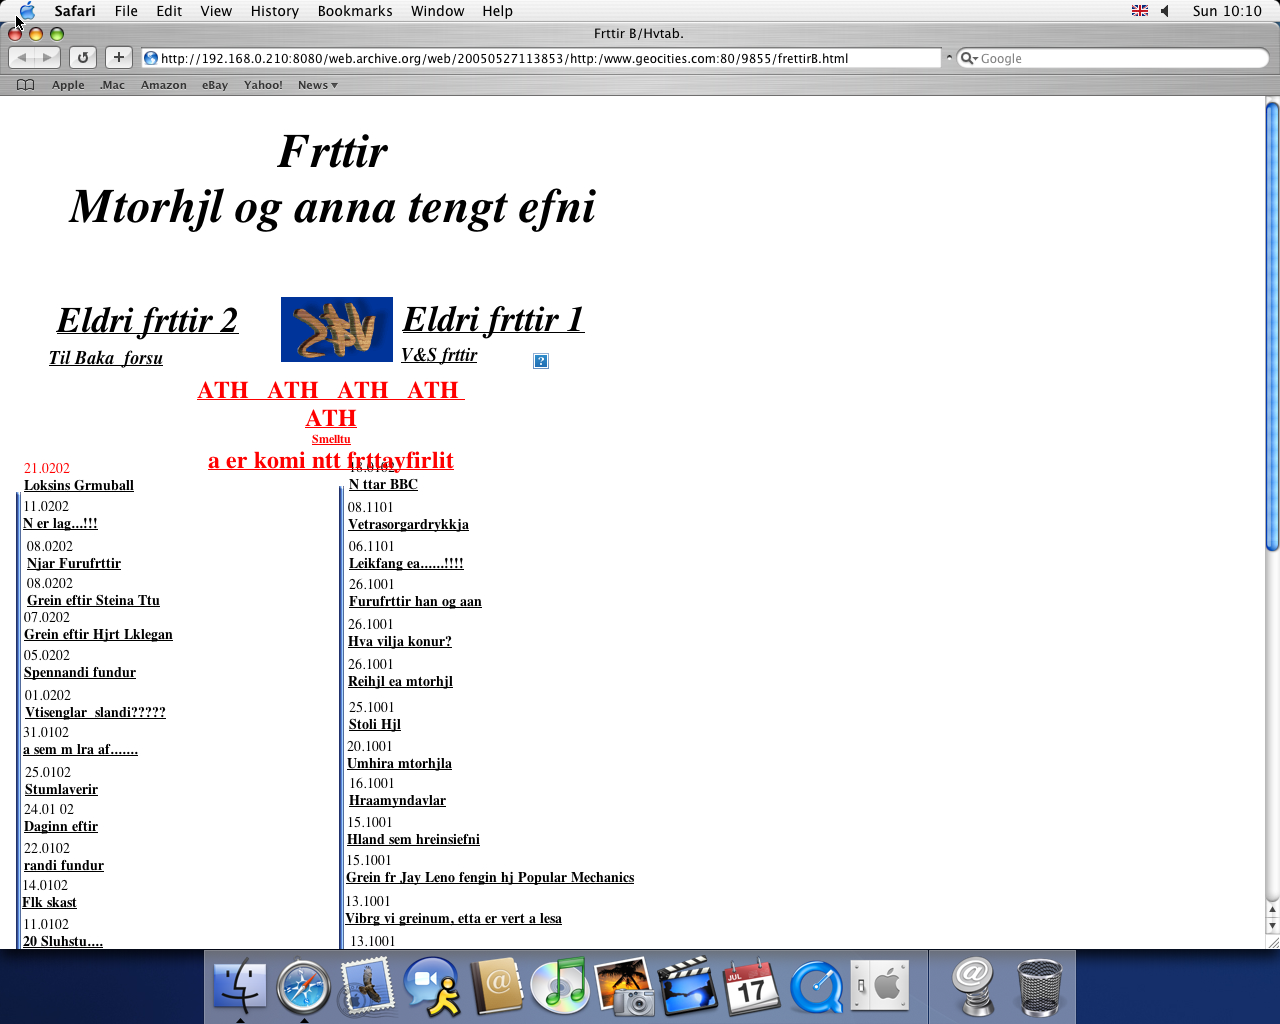 OS X 10.3 PPC with Safari 1.1 displaying a page from GeoCities archived at May 27, 2005 at 11:38:53